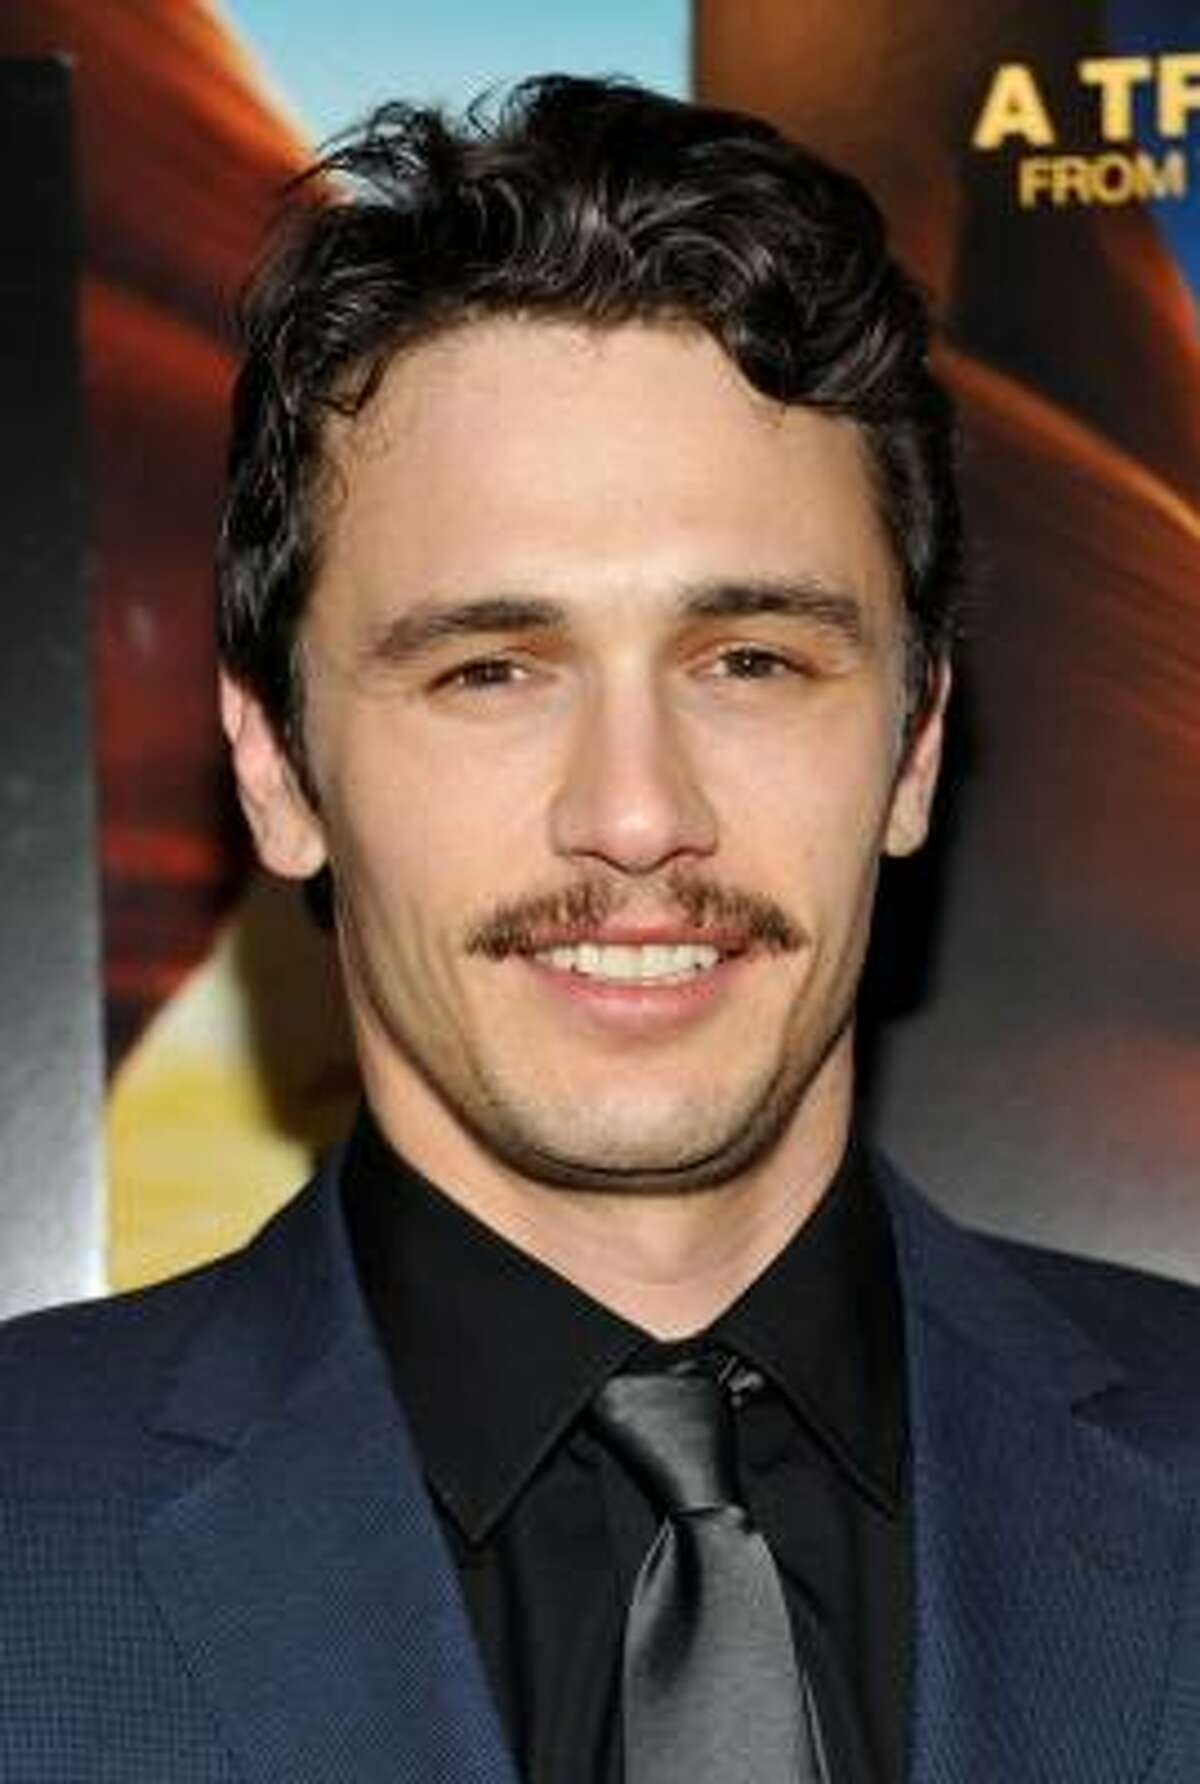 In this Nov. 2, 2010, file photo, actor James Franco attends the